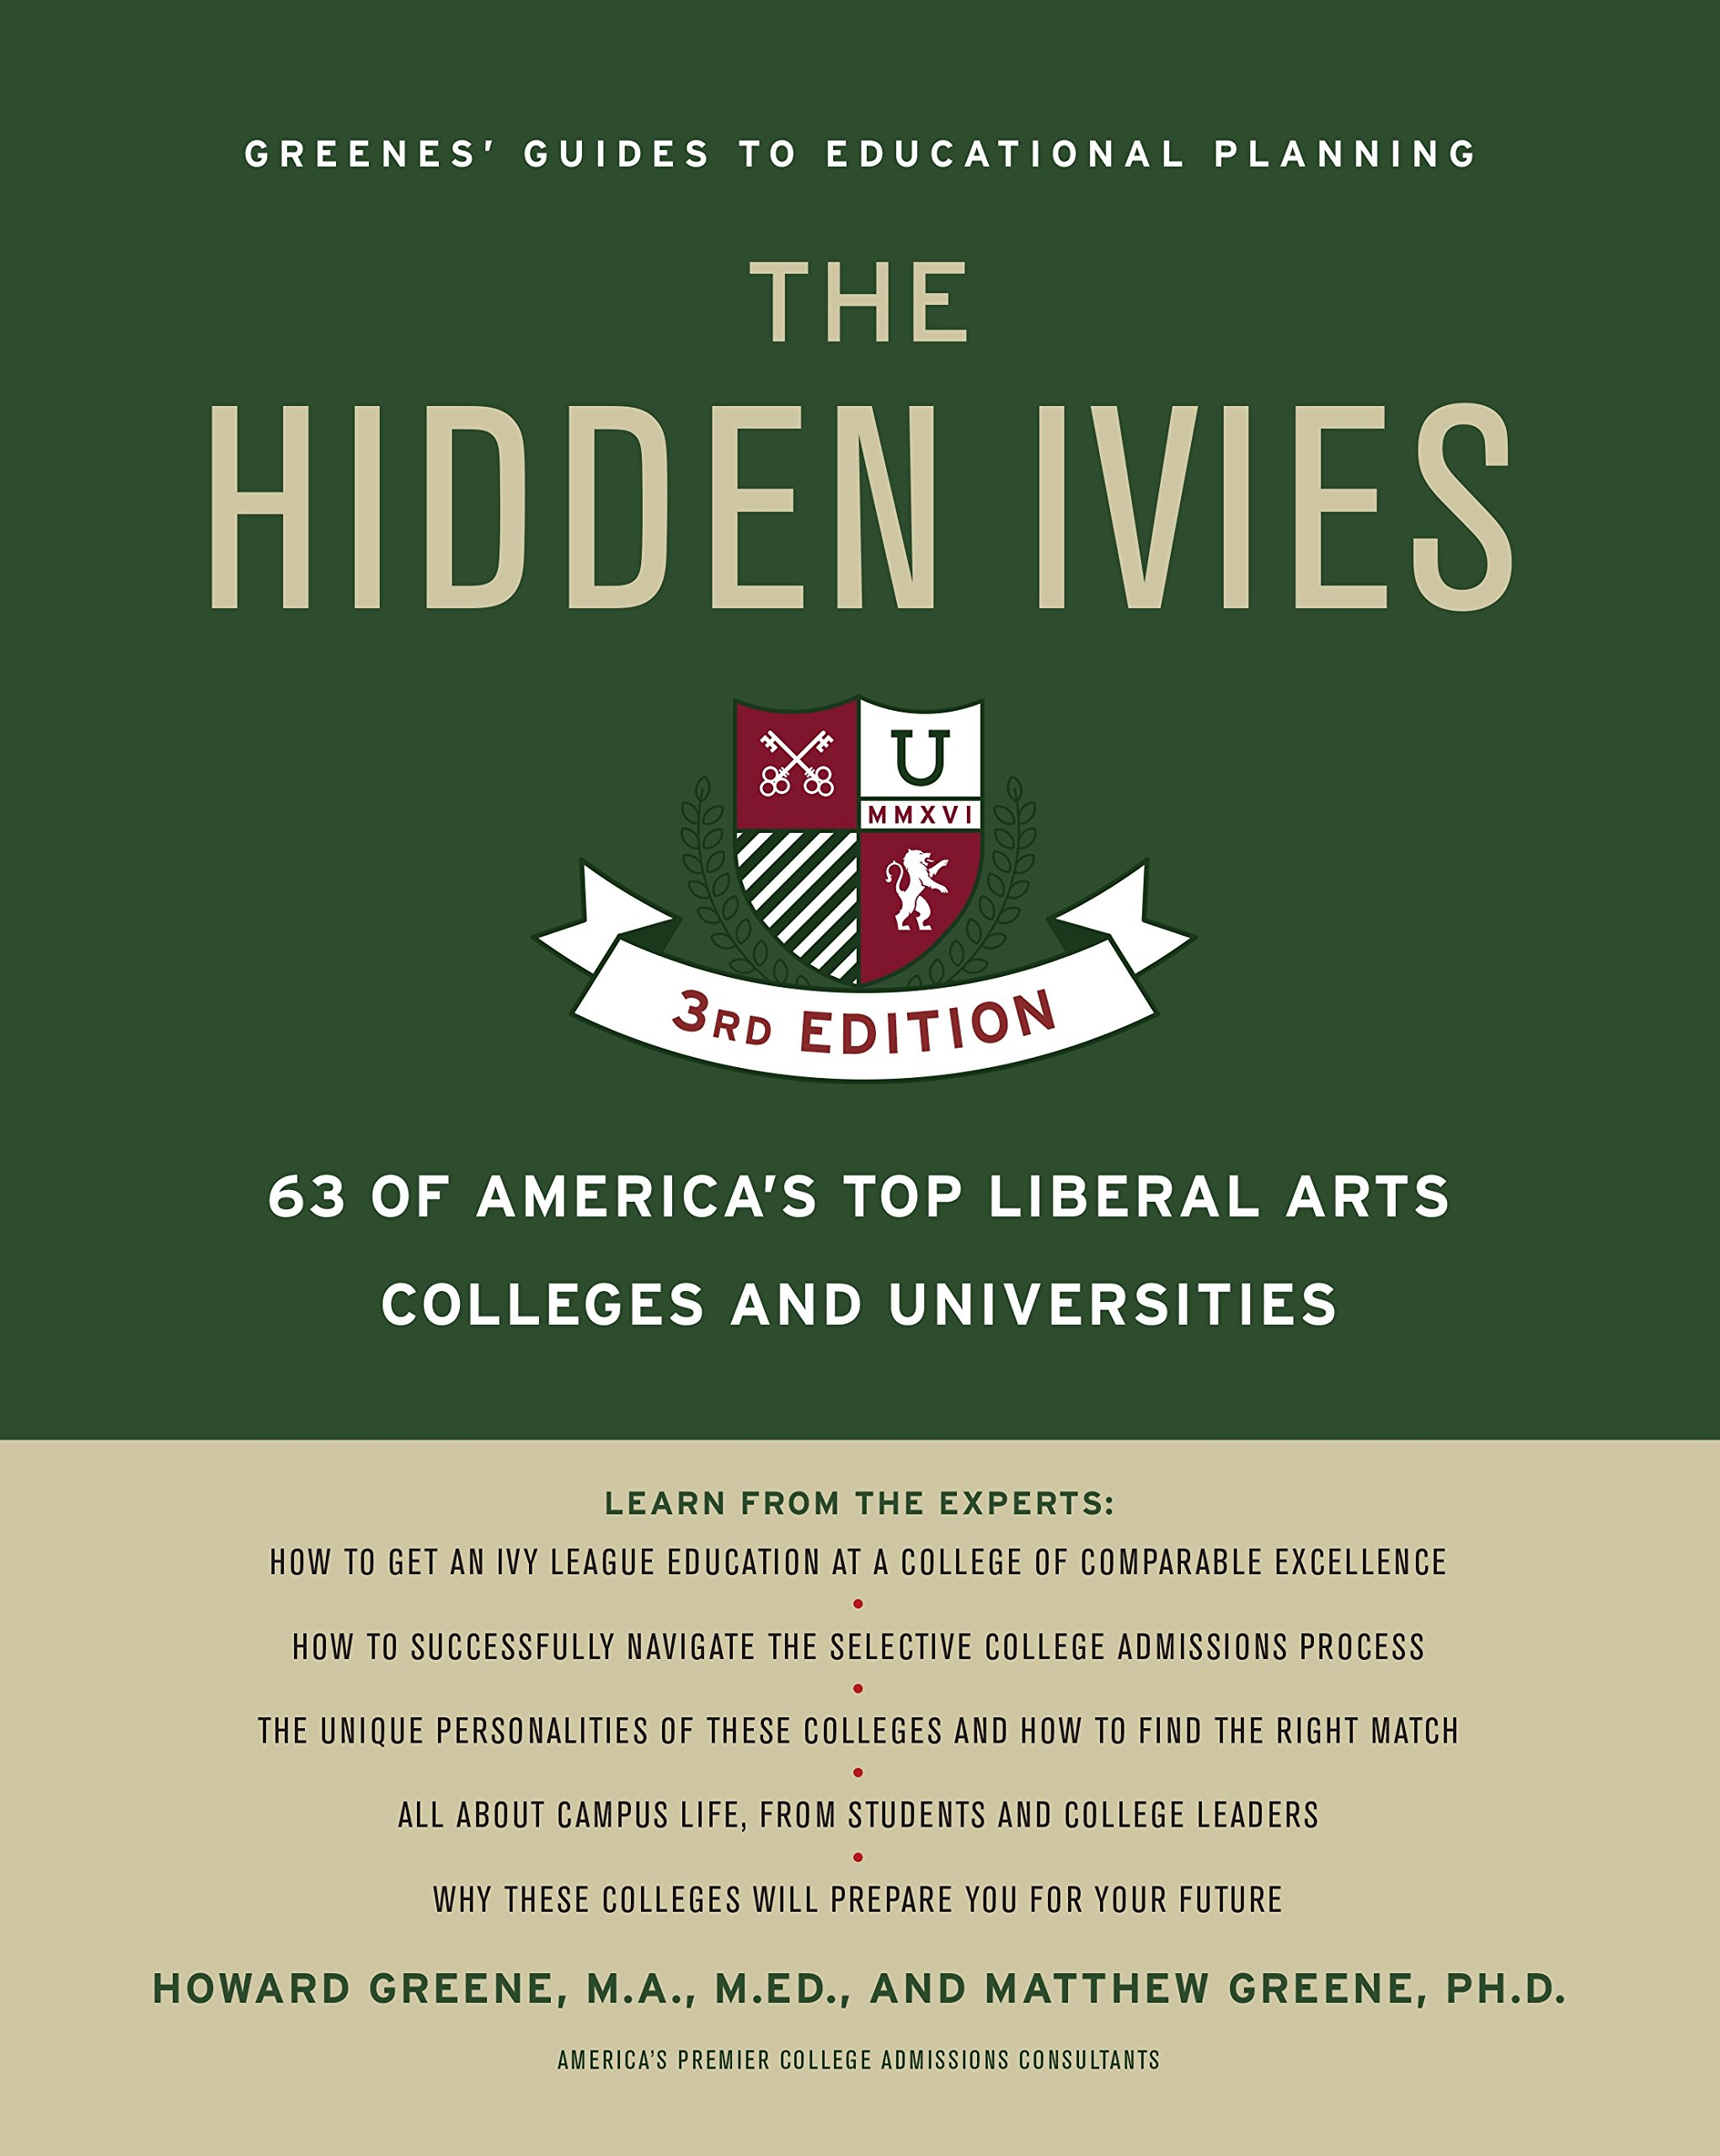 the hidden ivies rd edition of america s top liberal arts the hidden ivies 3rd edition 63 of america s top liberal arts colleges and universities greene s guides howard greene matthew w greene